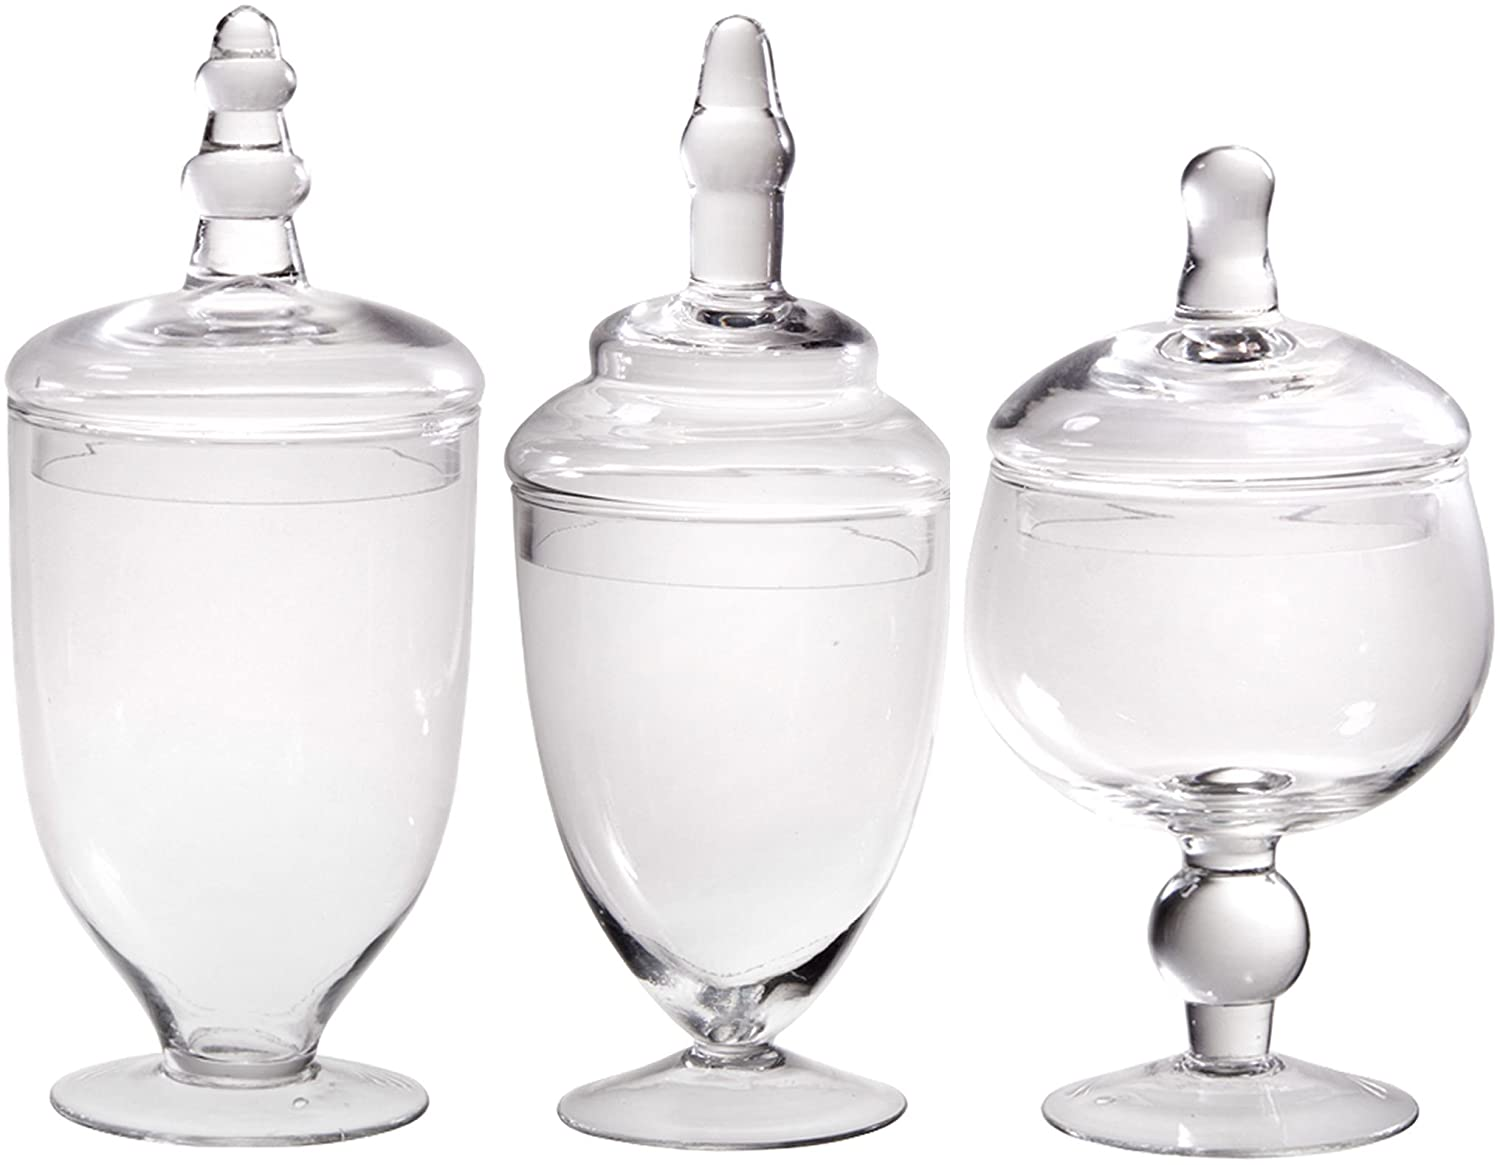 Palais Glassware Clear Glass Apothecary Jars - Set of 3 - Wedding Candy Buffet Containers (Small, Clear)